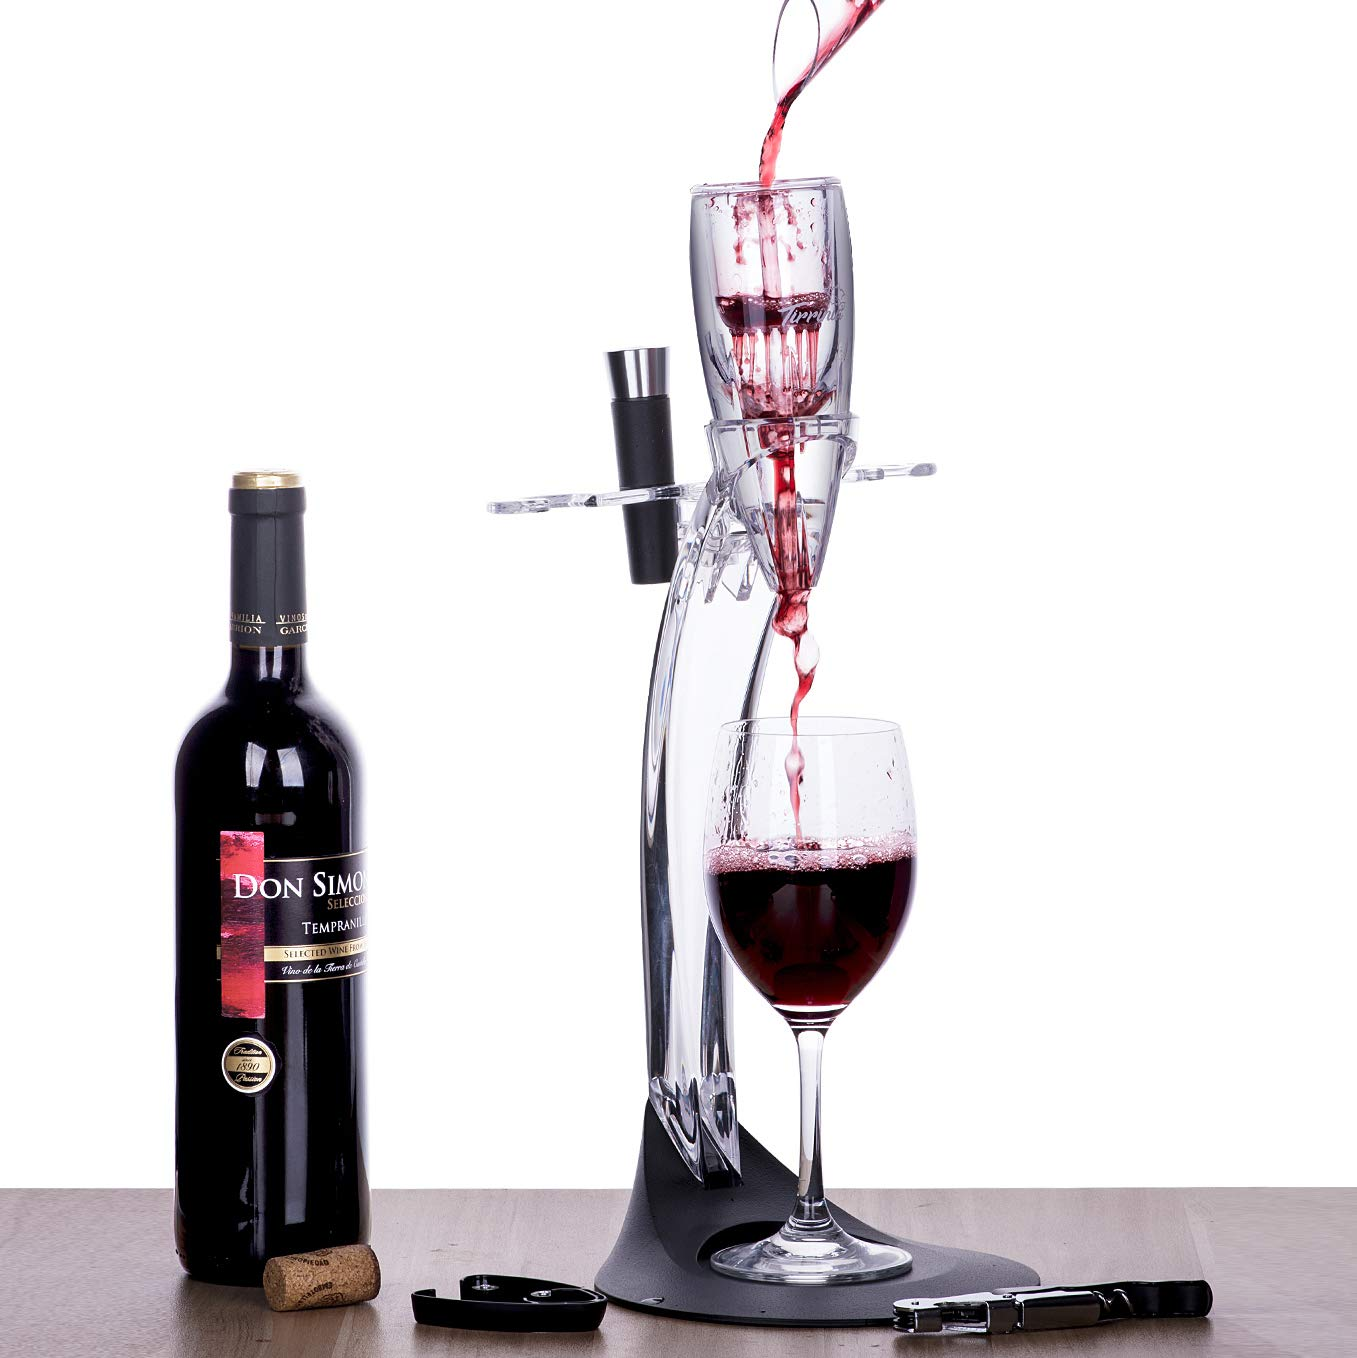 Tirrinia Wine Aerator Stand Set, Wine Accessories Tower Holder Kit, Includes Wine Decanter Aerator, Stopper, Opener, Pourer and Foil Cutter, Perfect Gift for Wine Lover by Tirrinia (Image #1)